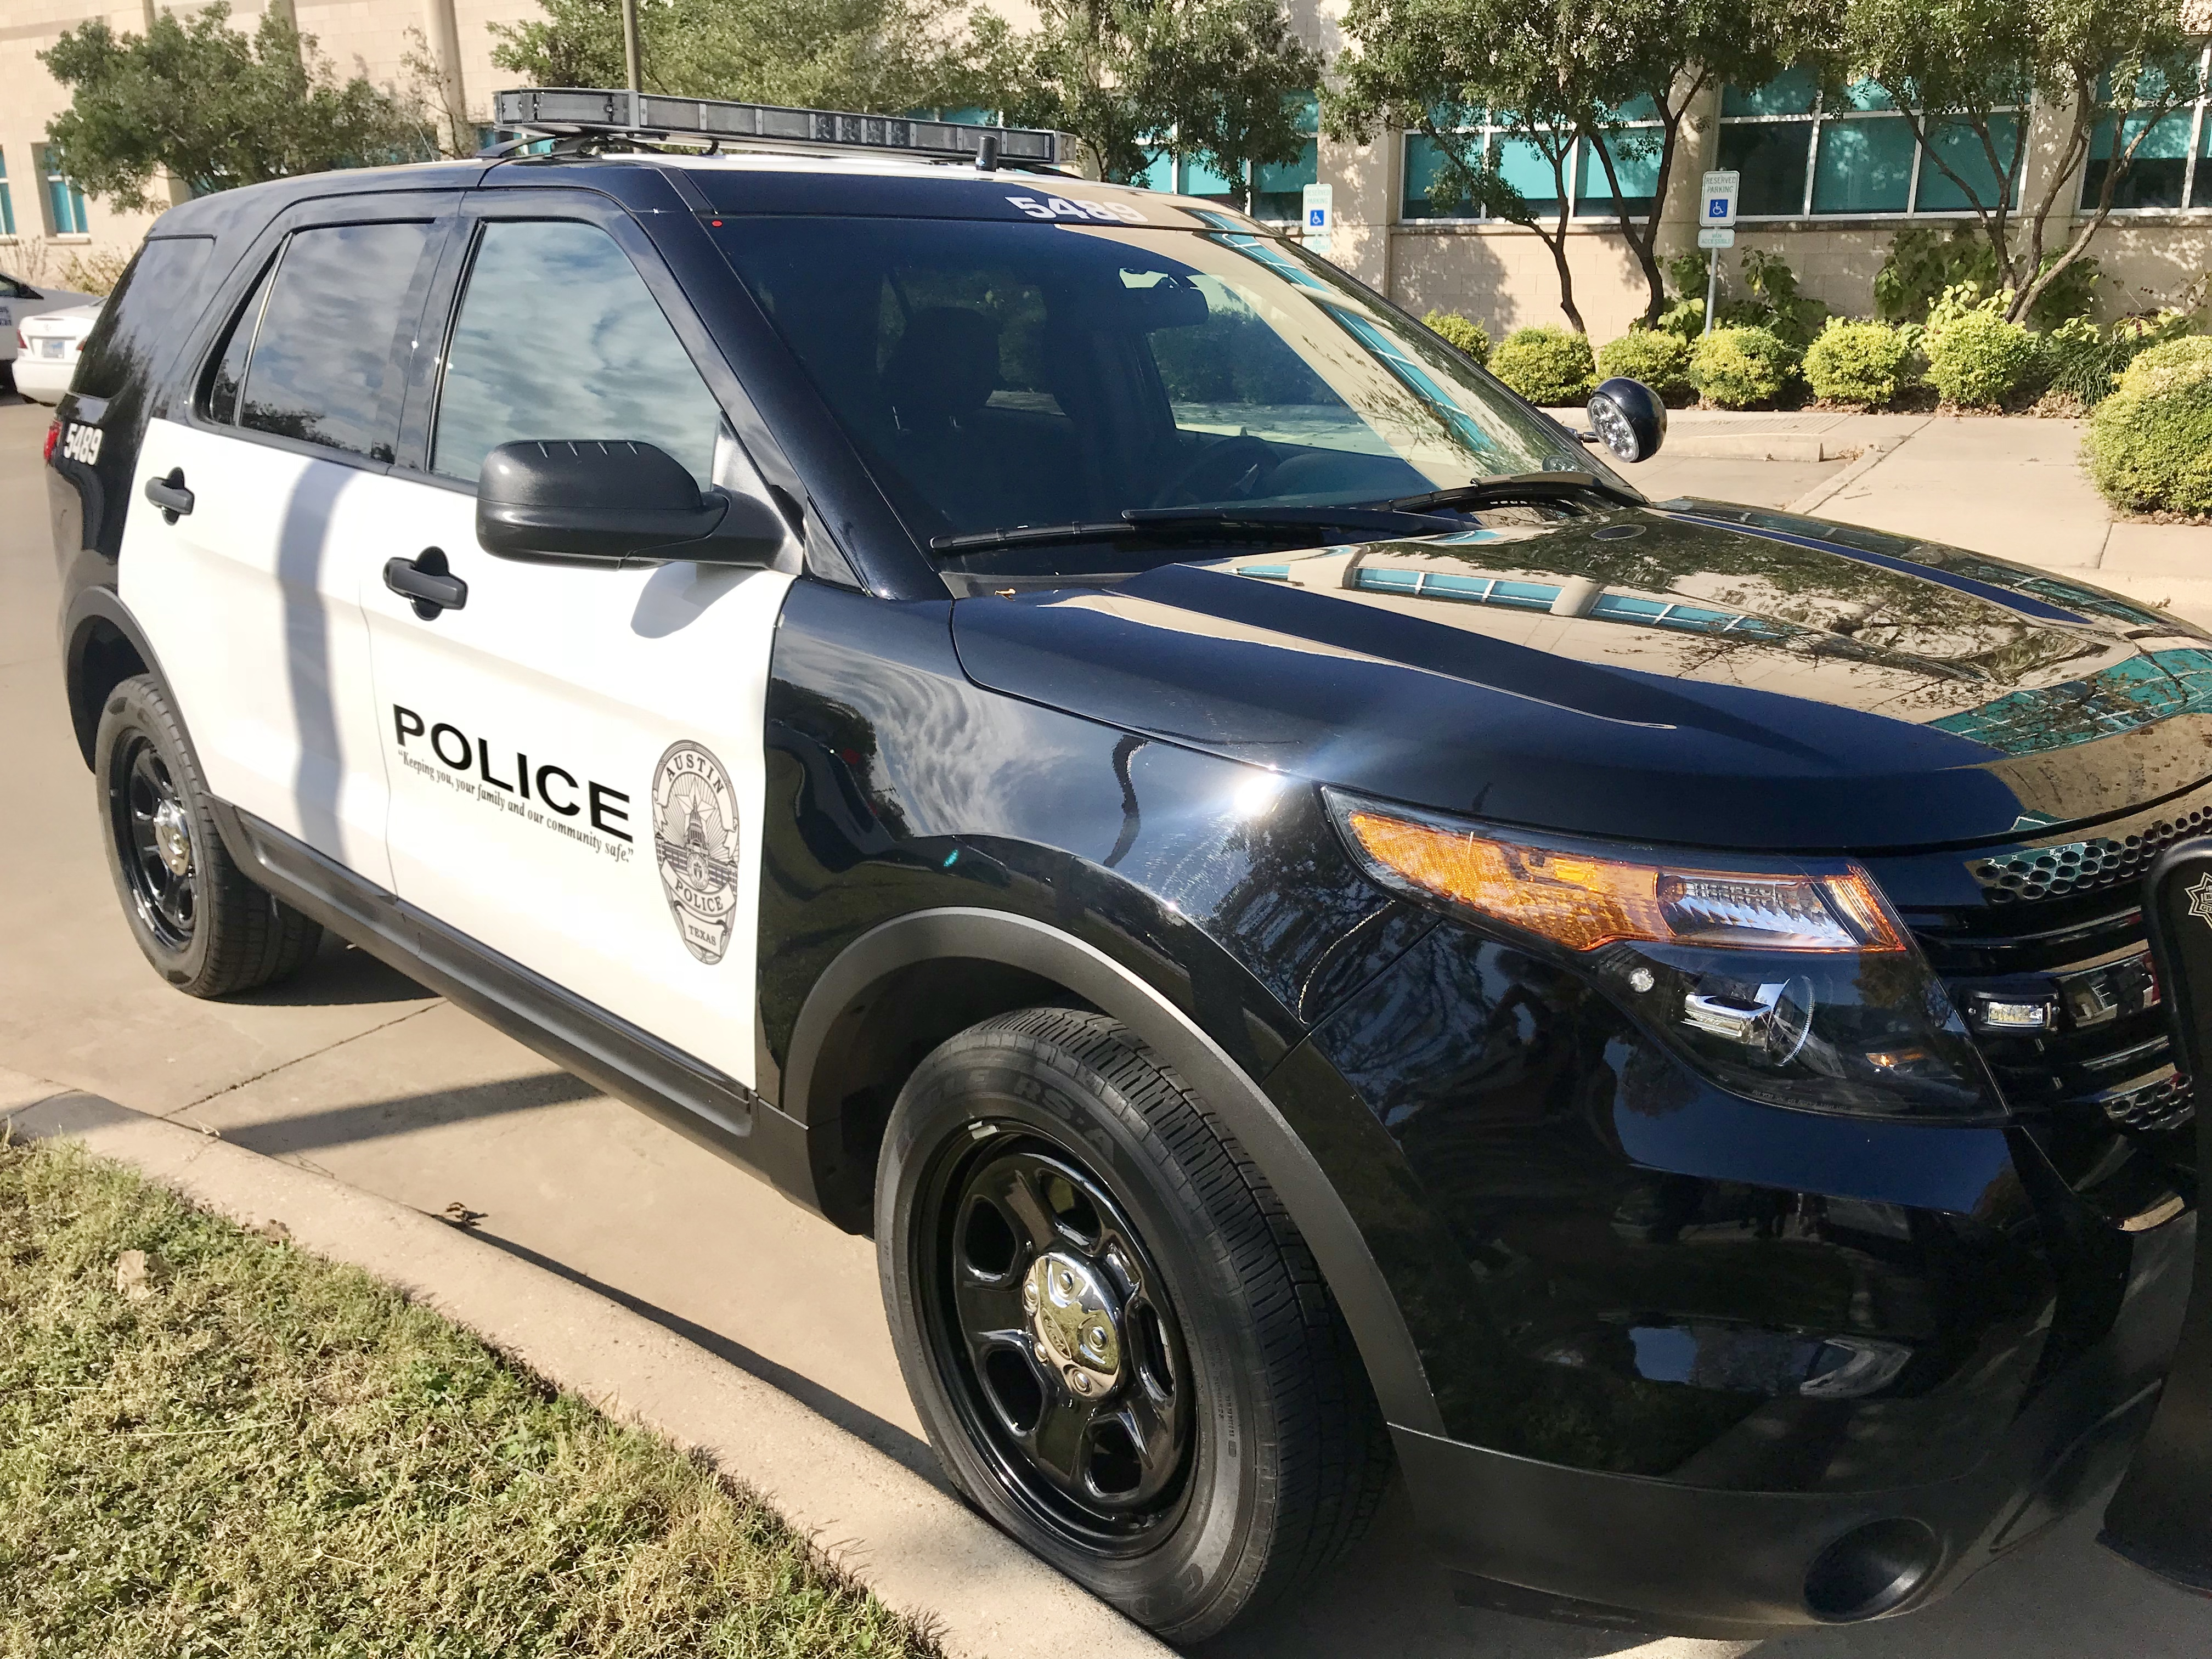 46 of 439 modified Ford Explorers are back in service after being sidelined by the Austin Police Department because of safety concerns. (Photo: Bettie Cross)<p></p>